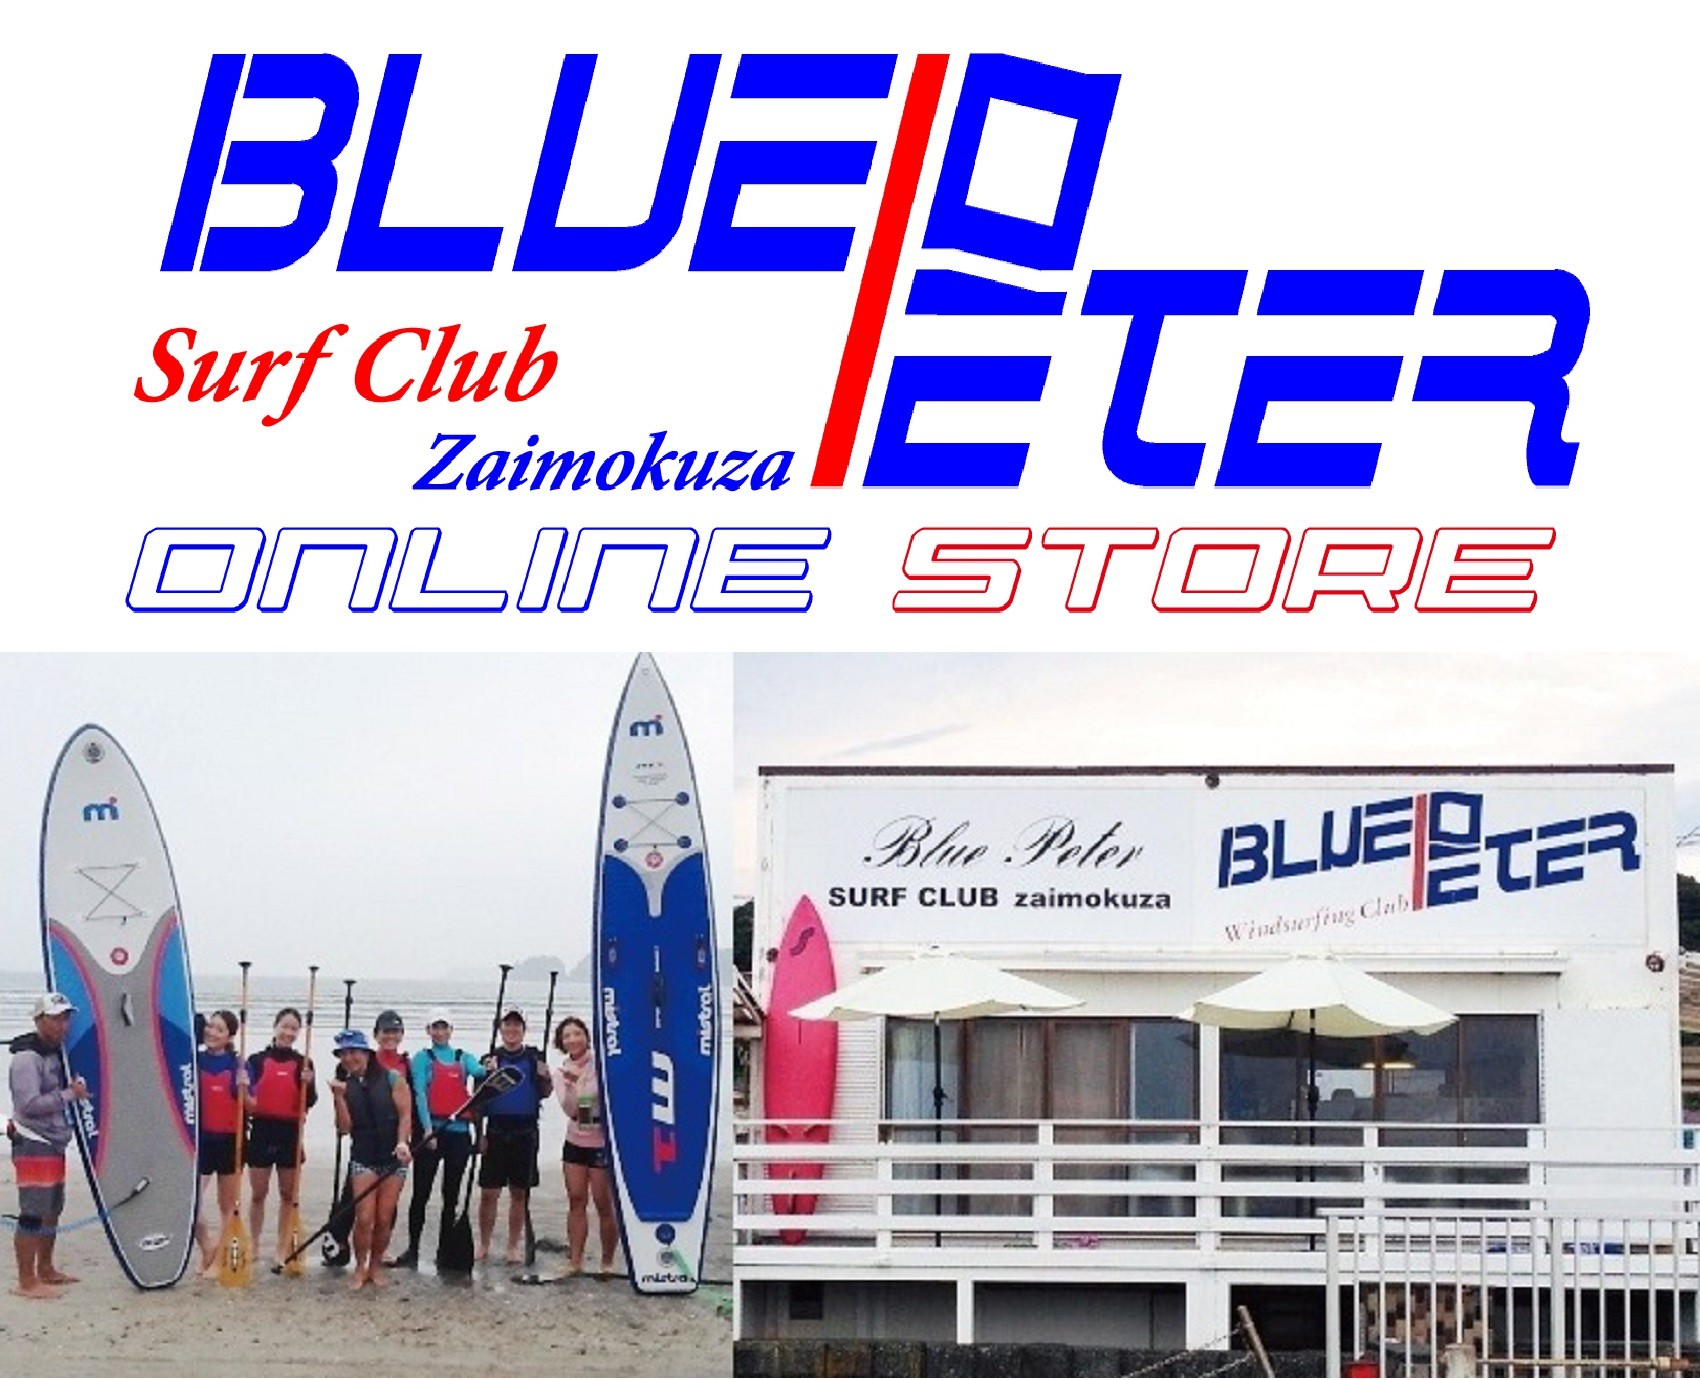 Blue Peter Surf Club Zaimokuza 【RESTUBE ONLINE SHOP】